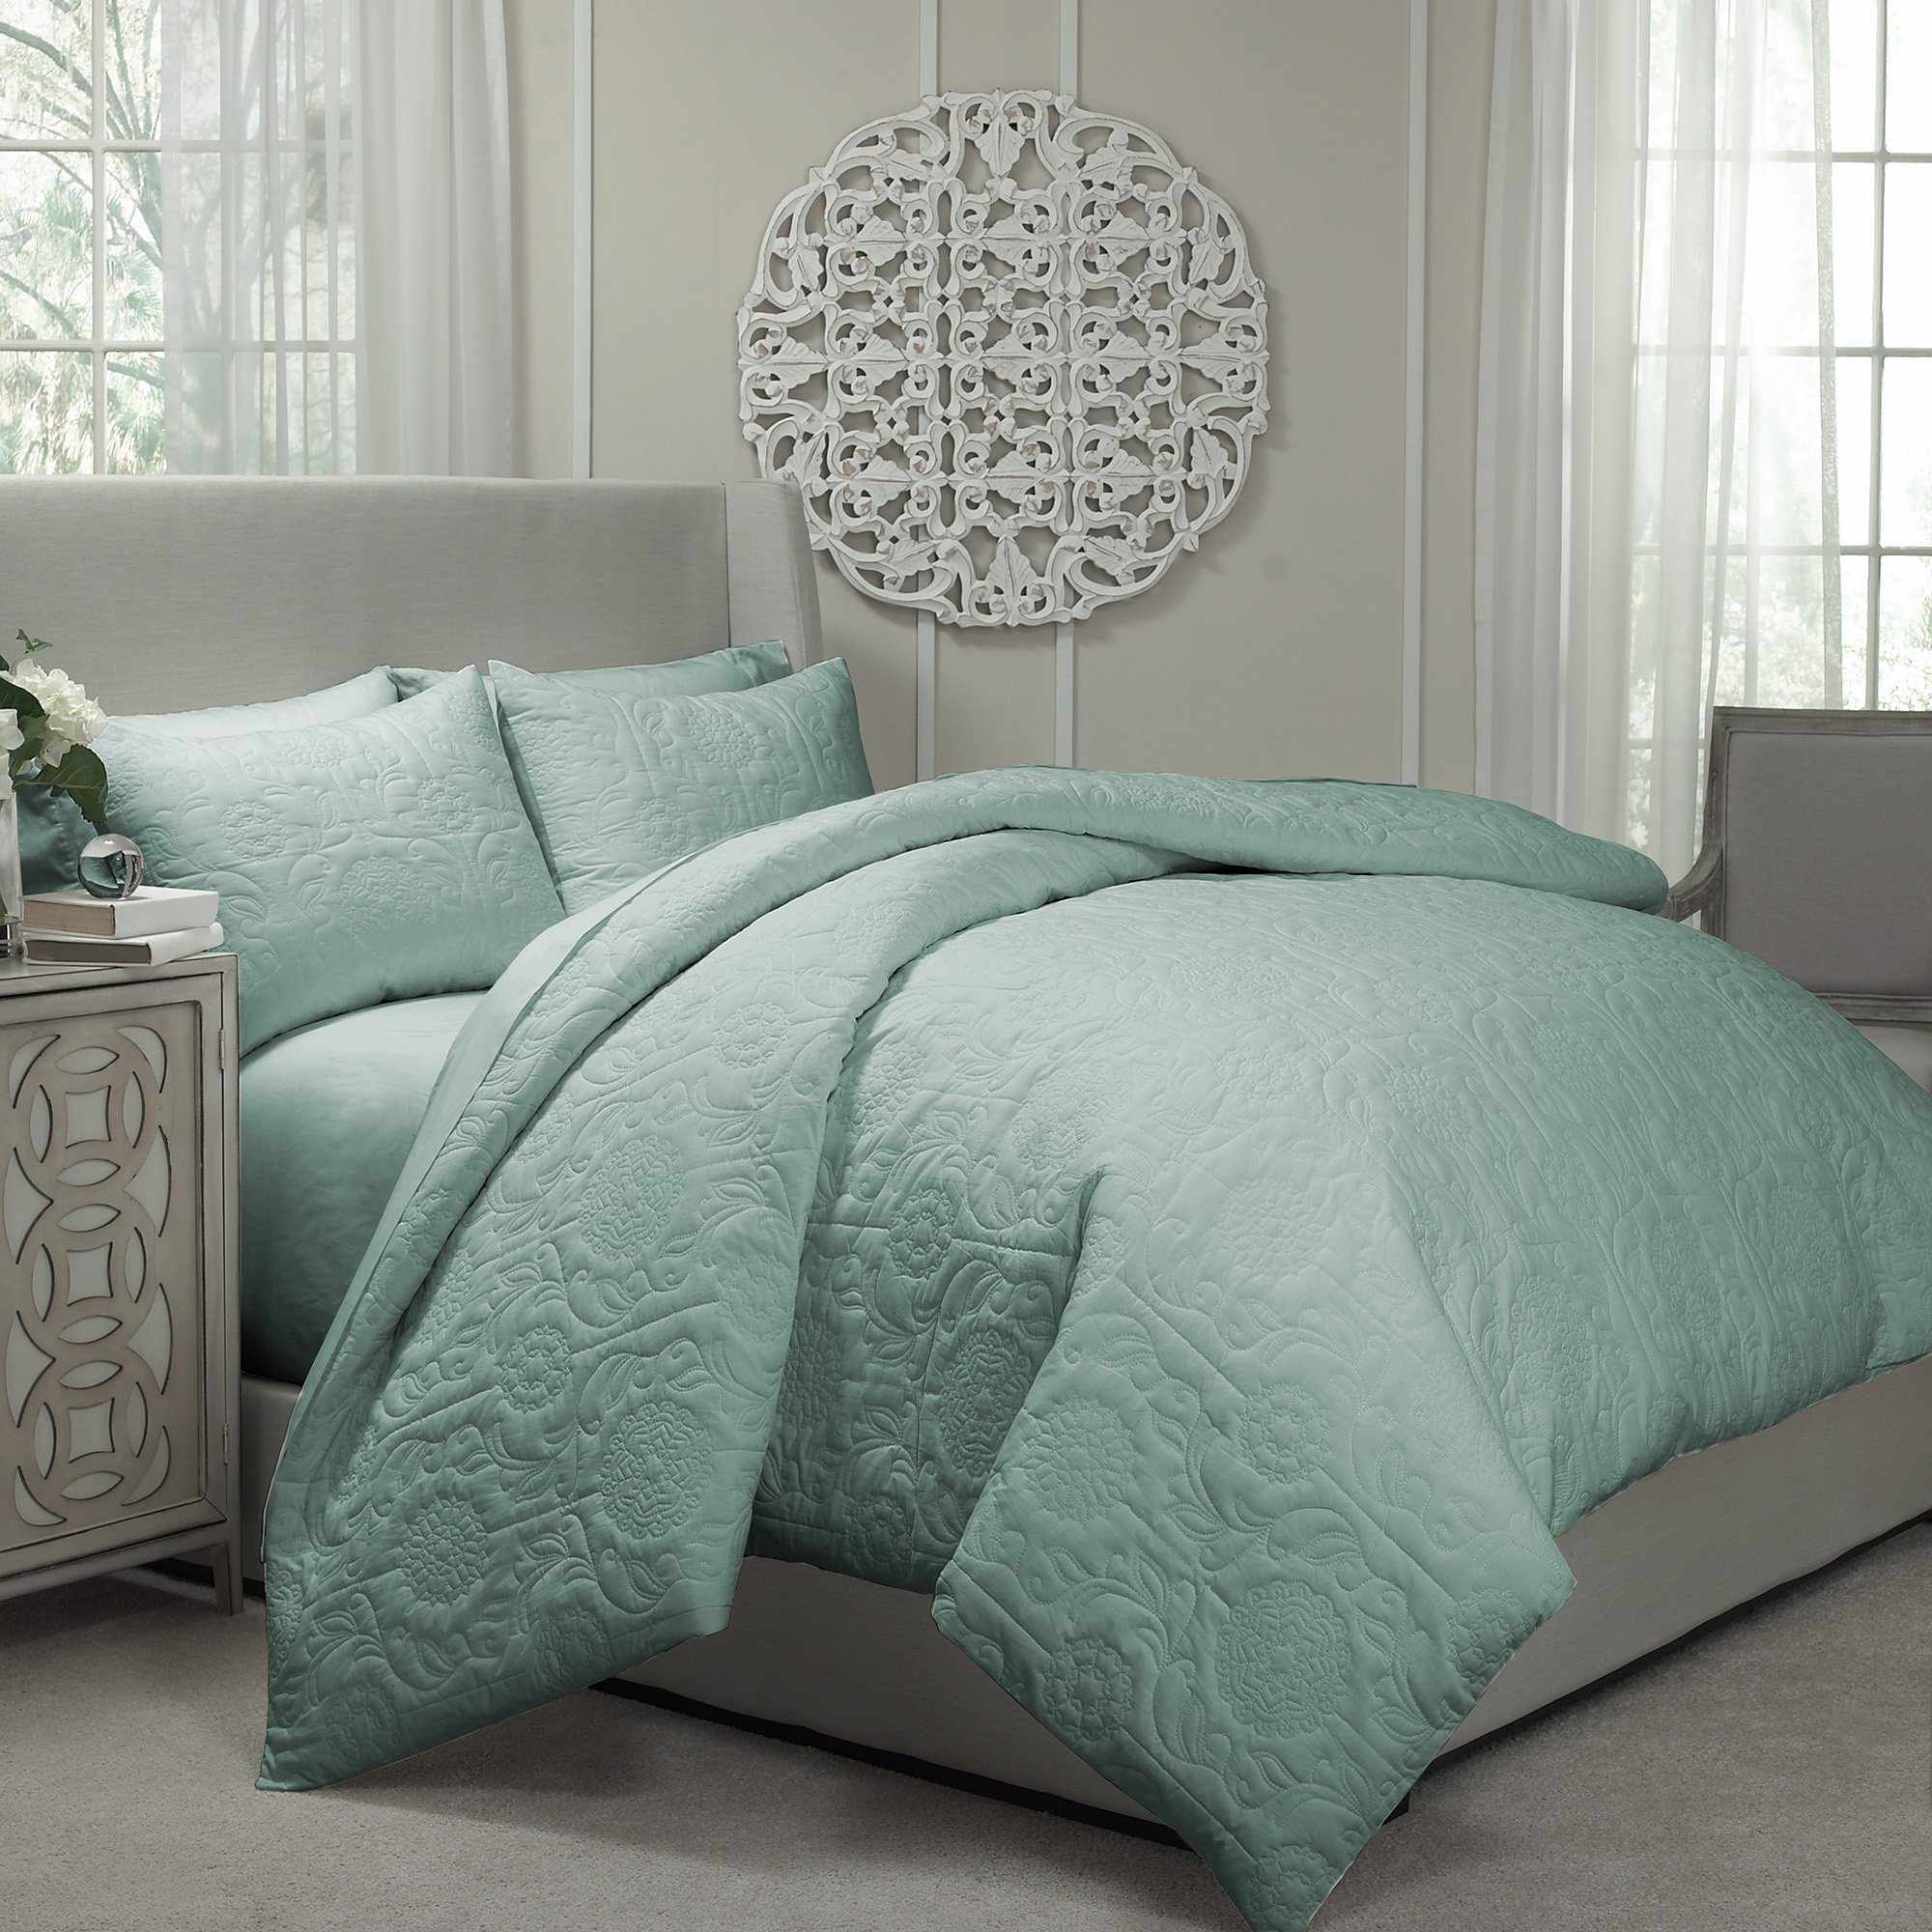 Vue 13811BEDDKNGSPA Barcelona Quilted Coverlet & Duvet Ensemble, Spa, King